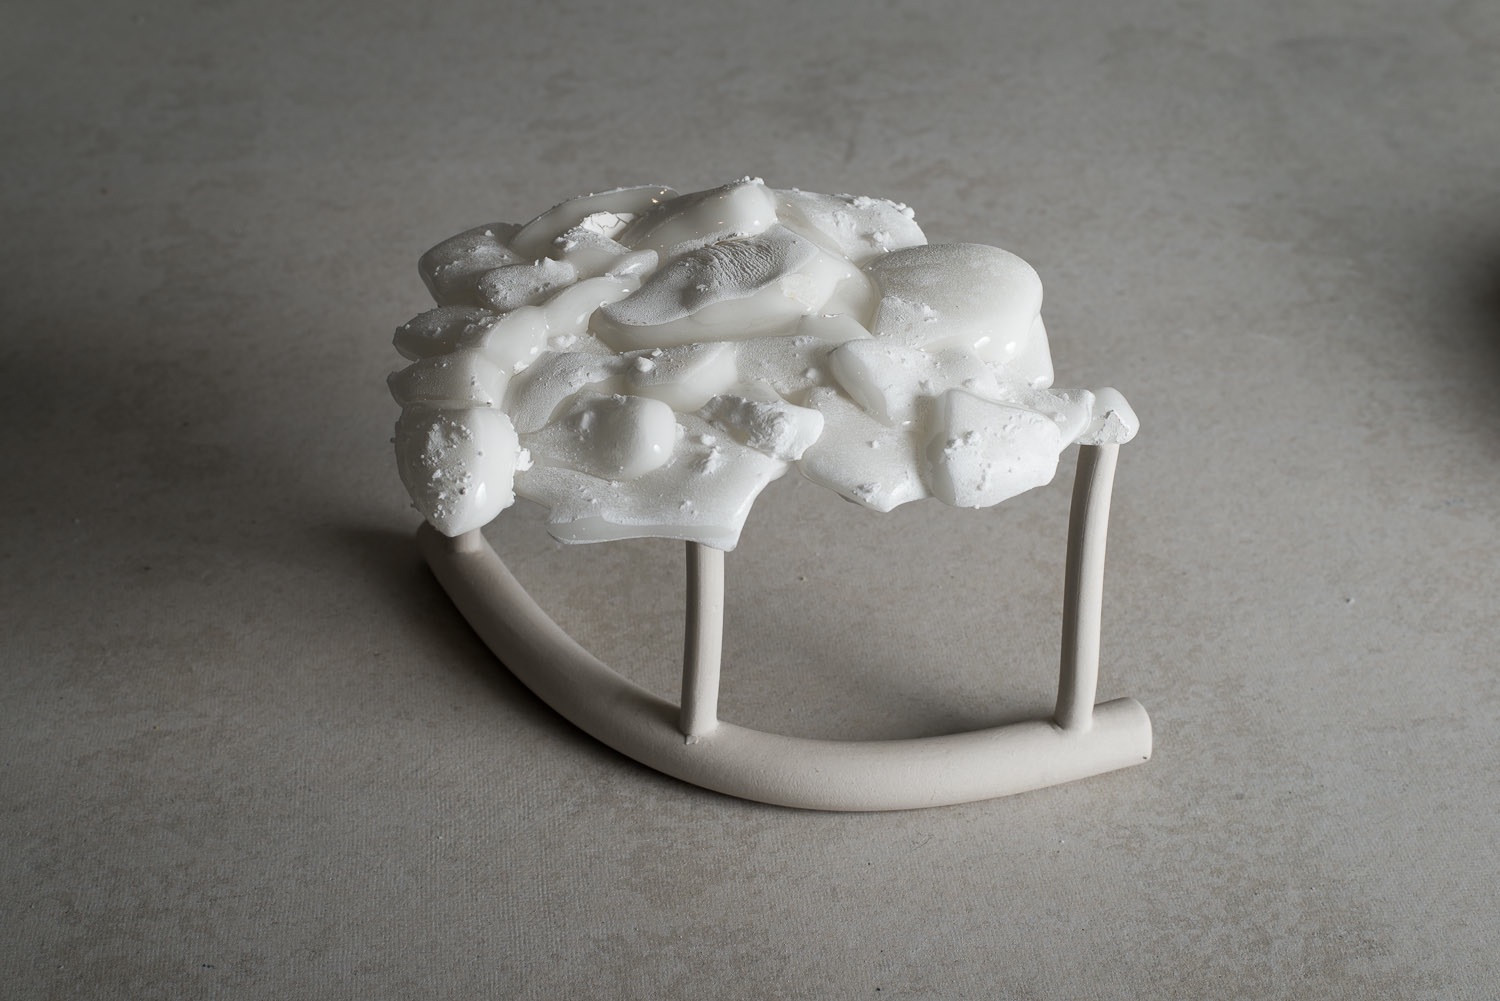 (Artificial rock no.2) 2014, honours gra